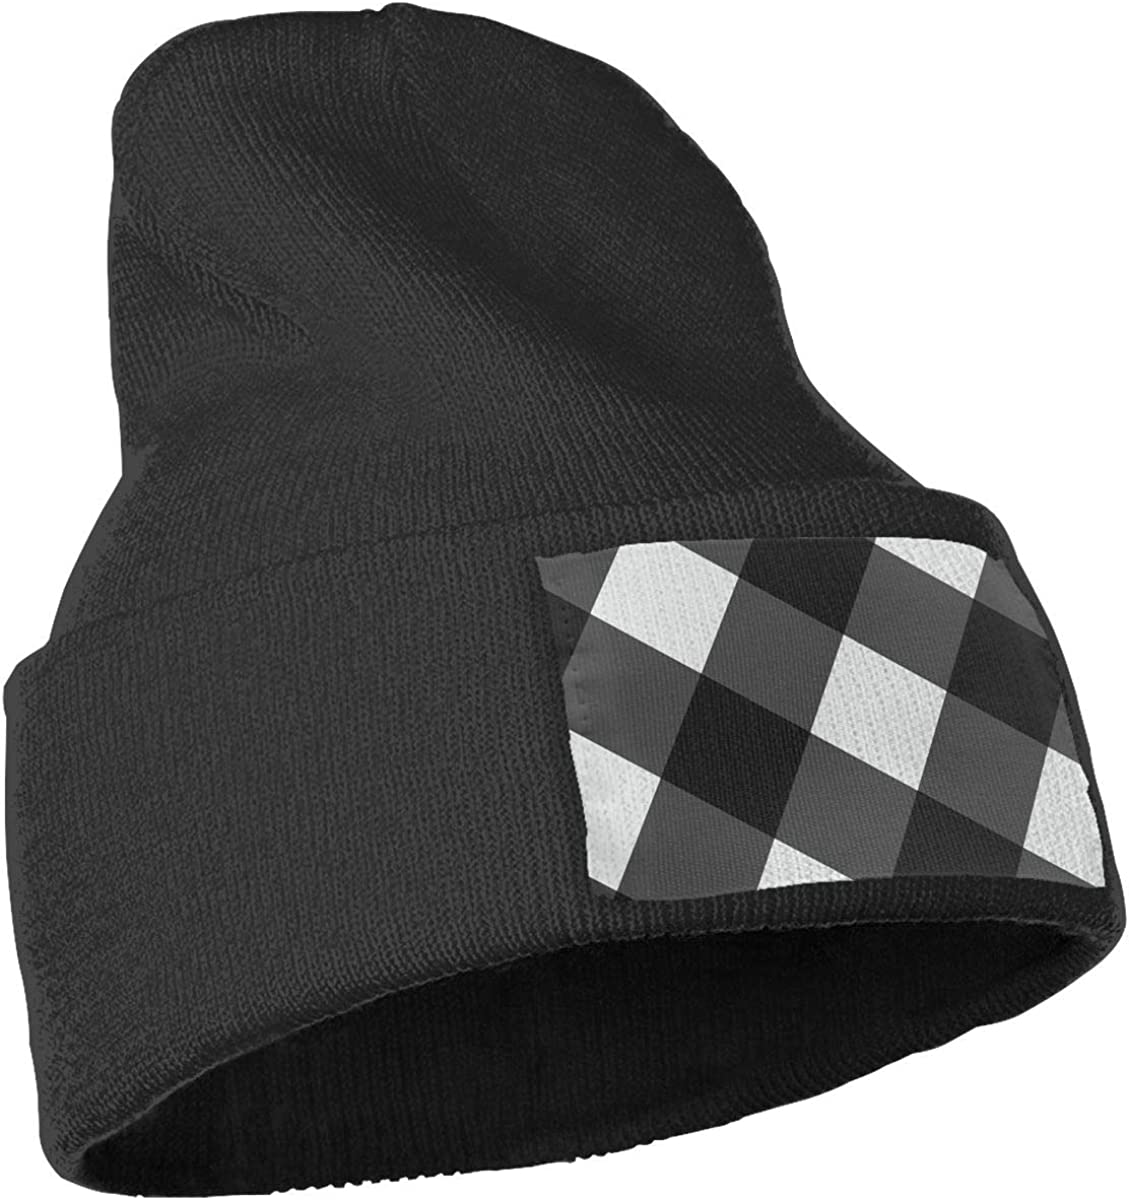 JZMY6 Black Striped White Checker Solid Color Beanie Hat Knit Cap